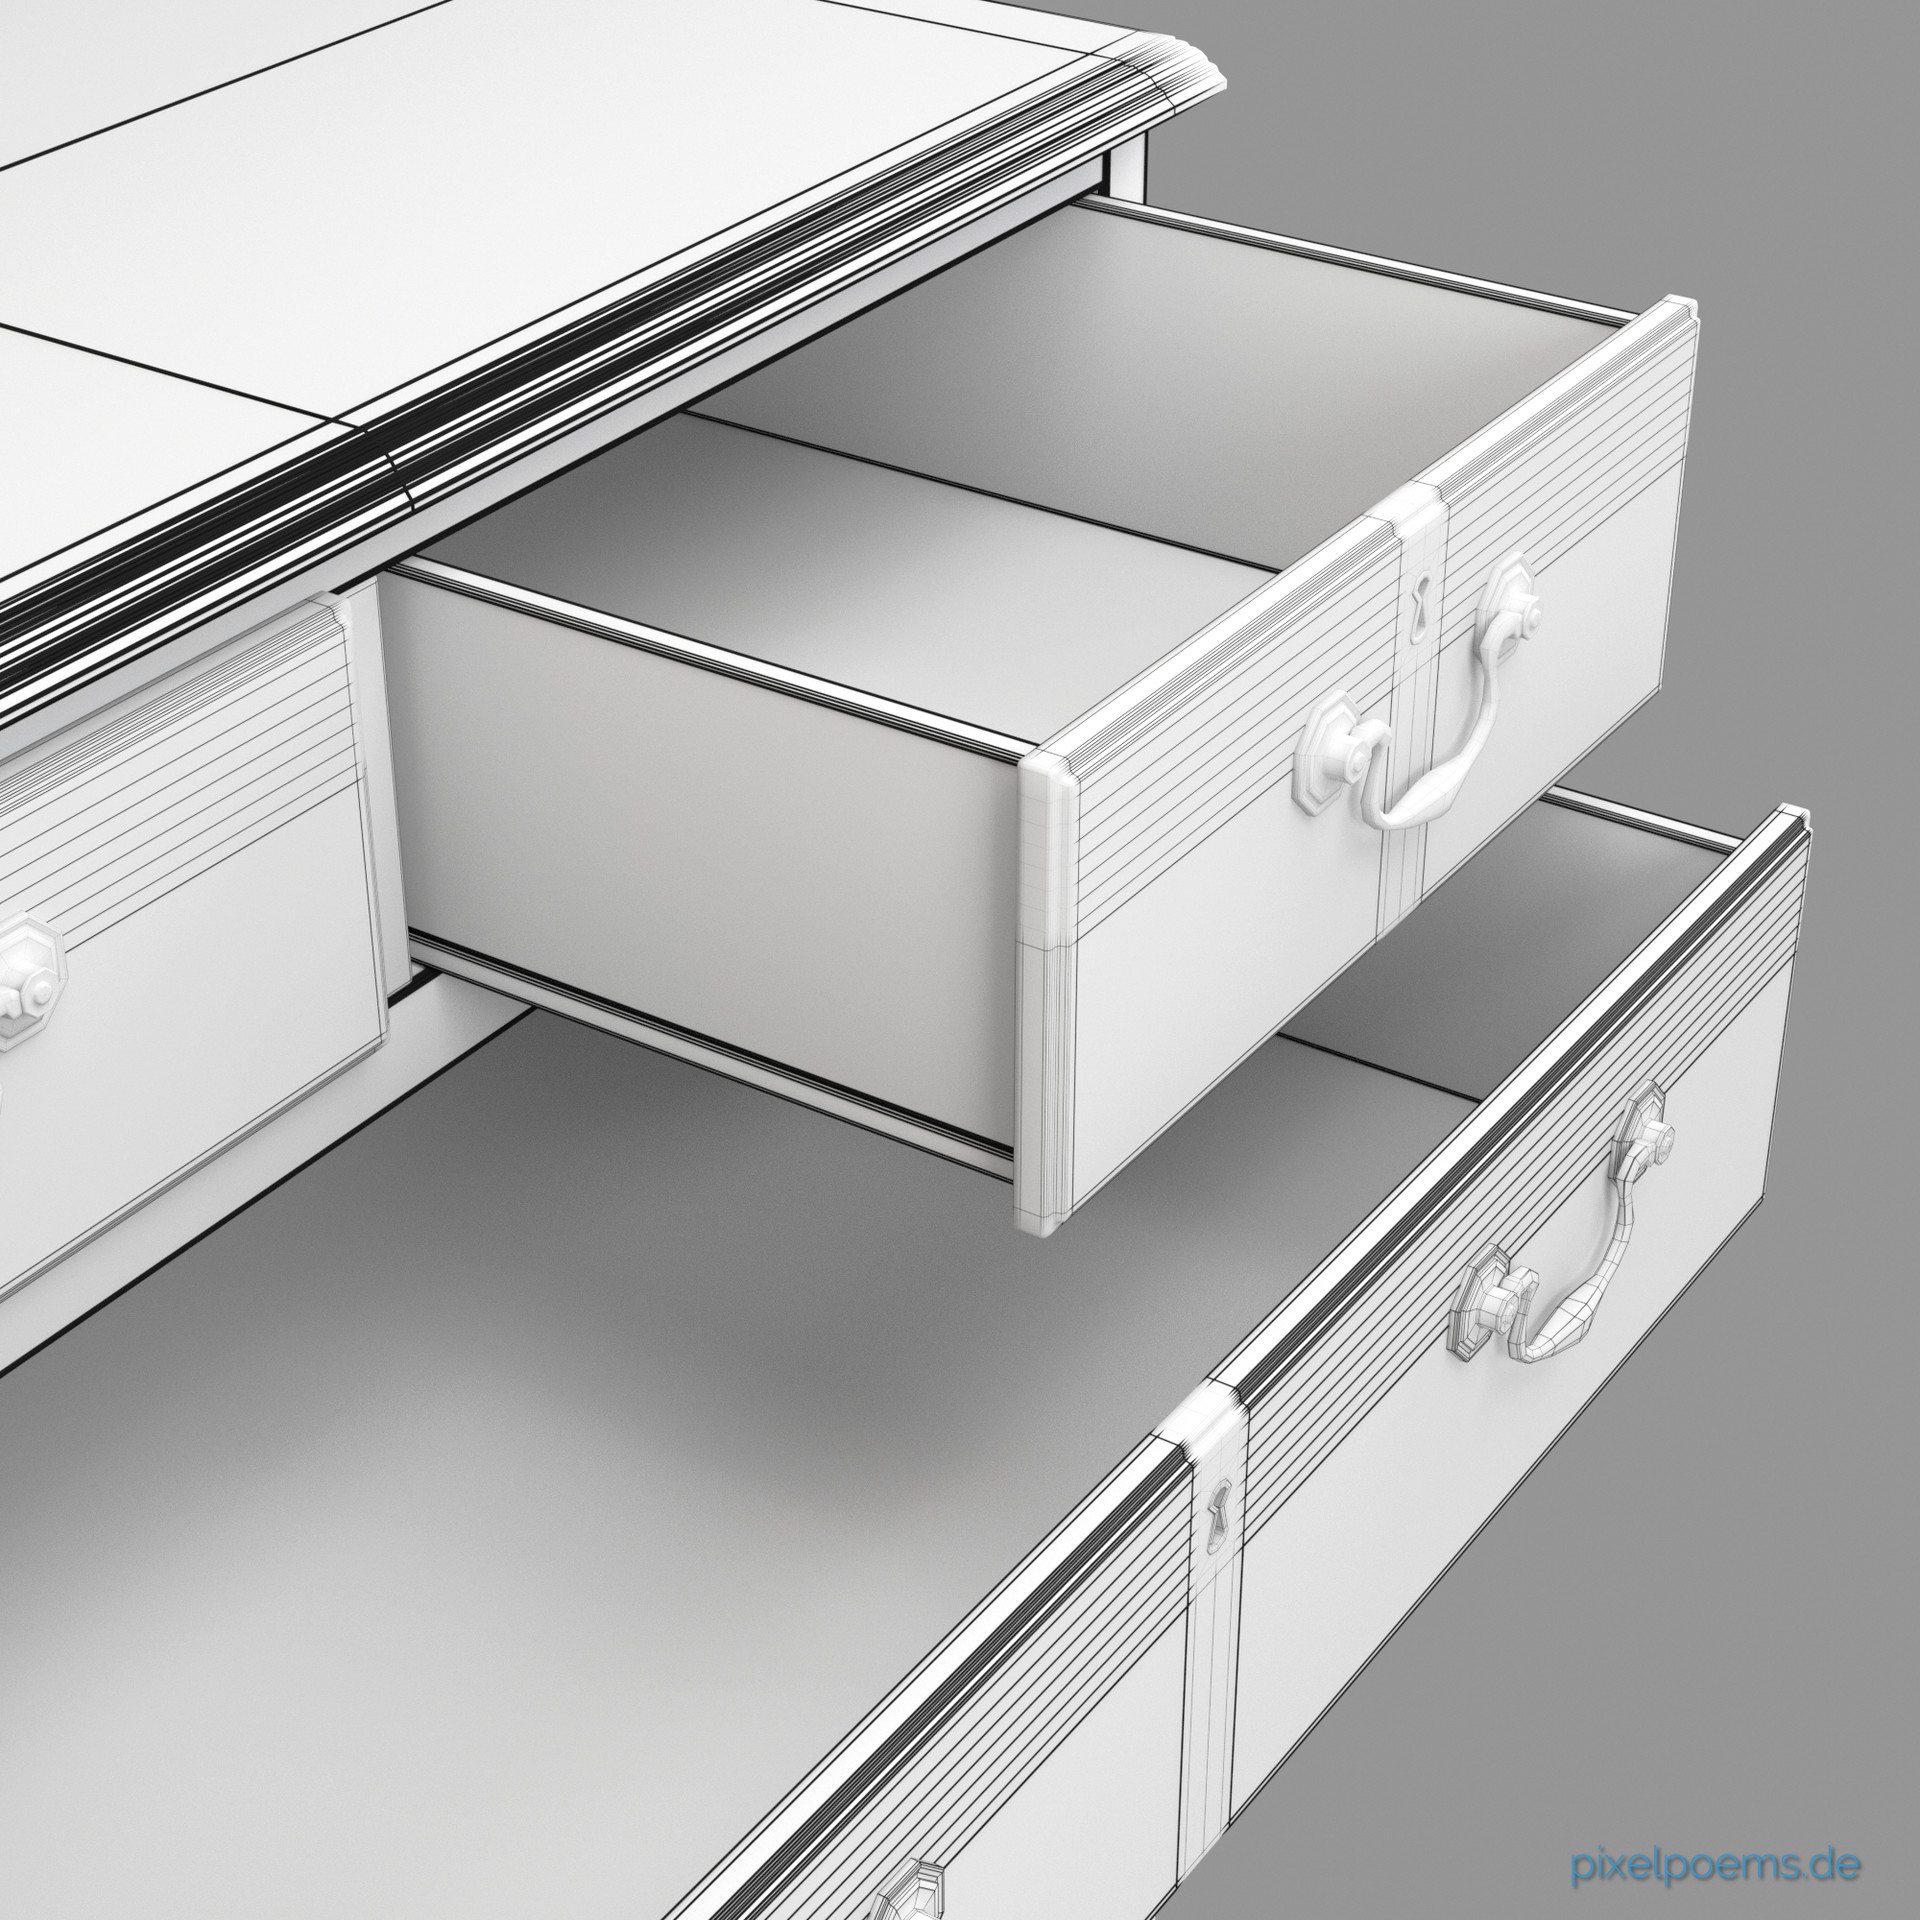 Karl andreas gross mahagony chest of drawers webversion 10